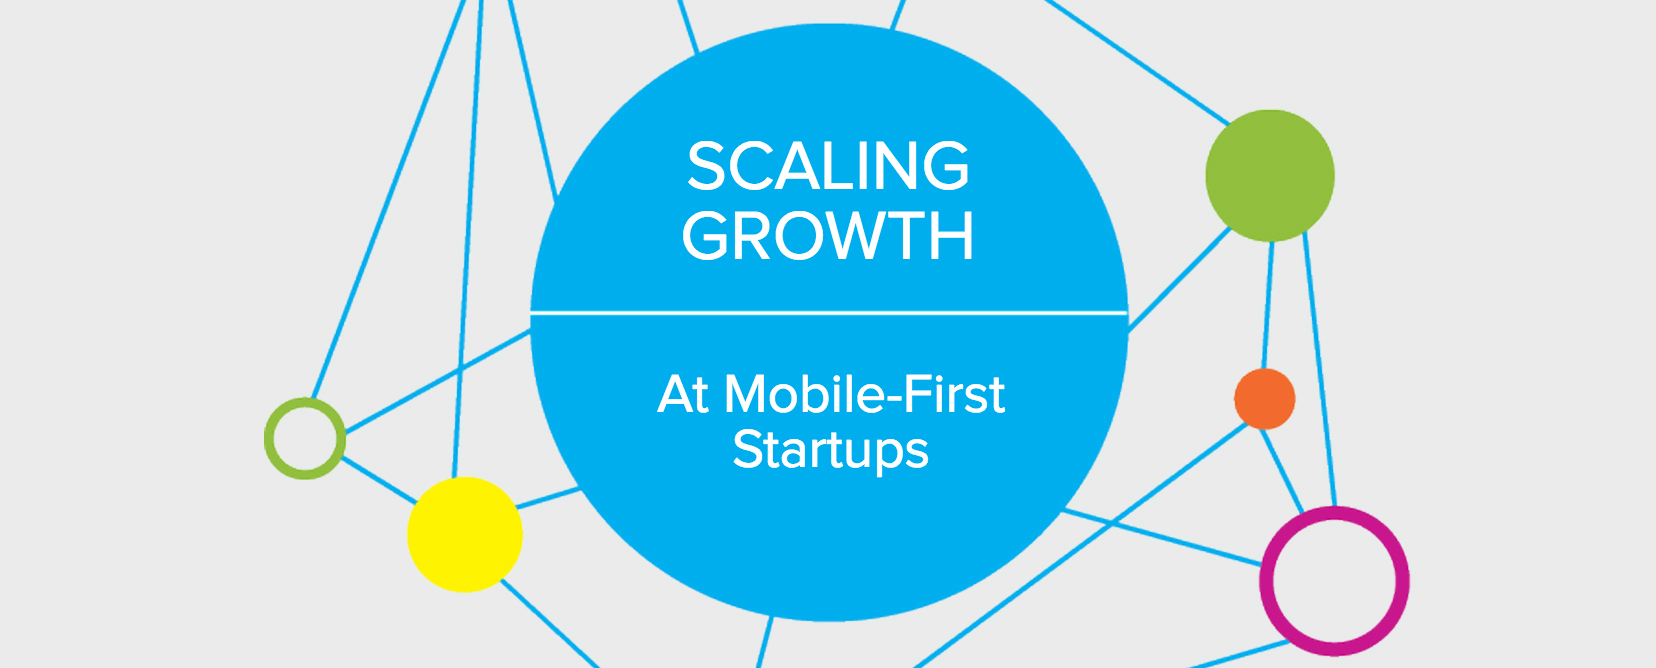 Scaling Growth at Mobile-First Startups: Challenges and Tips